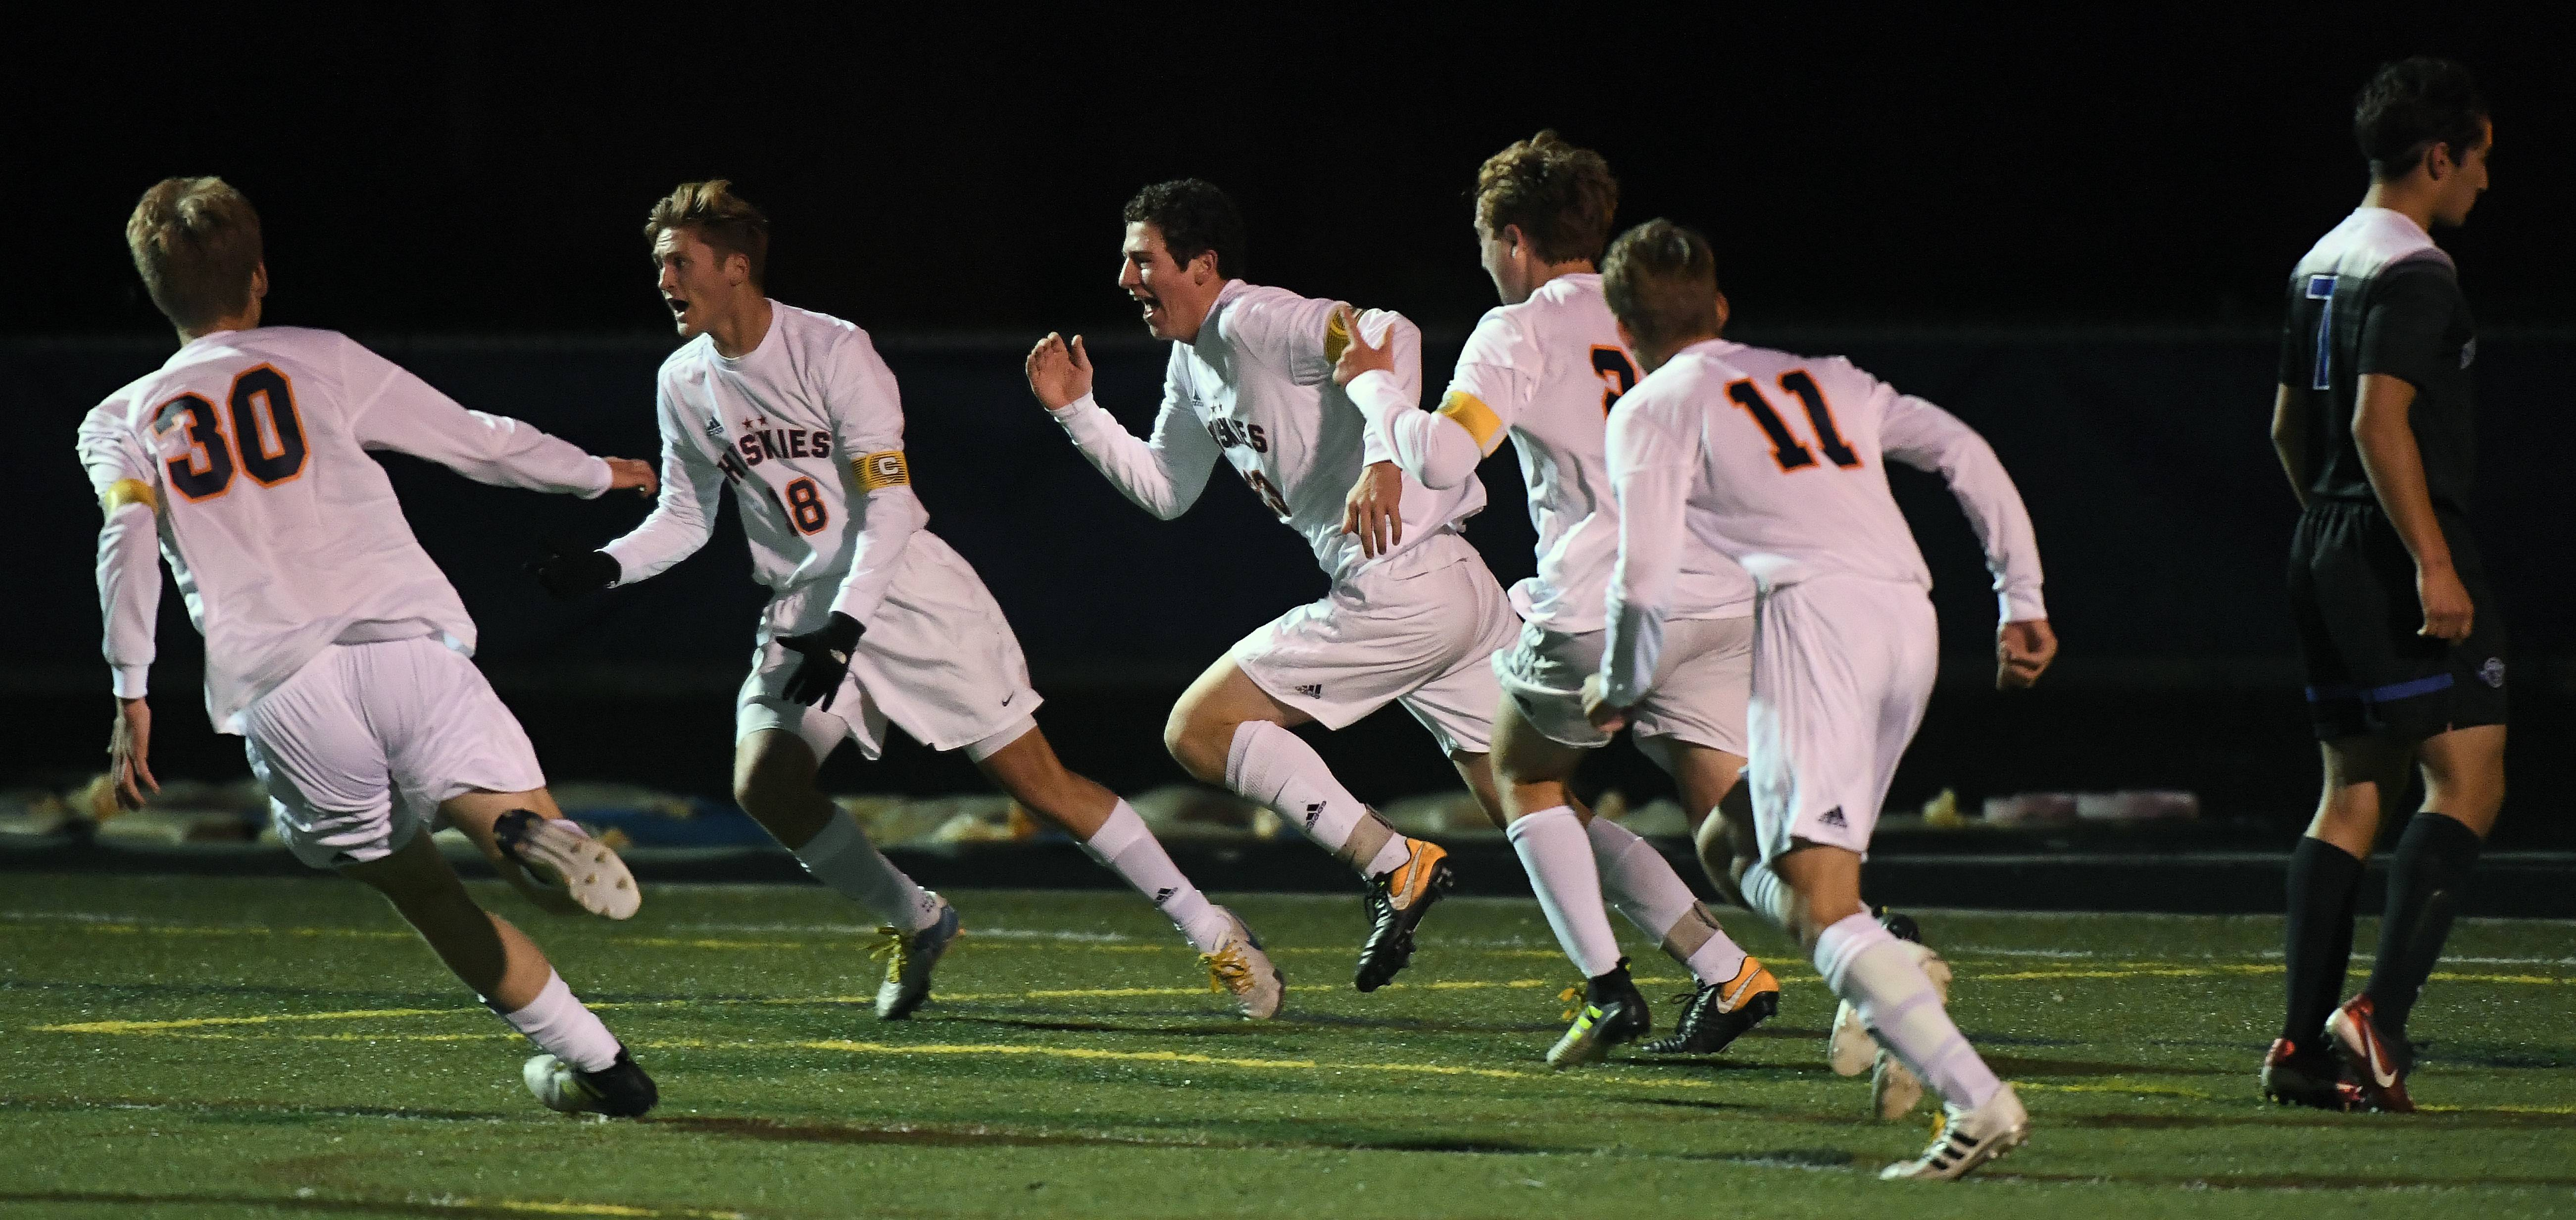 Naperville North's Jack Barry, third from left, scored a first-half goal and celebrates with teammates against St. Charles North in the boys state soccer semifinals at Hoffman Estates High School on Friday.